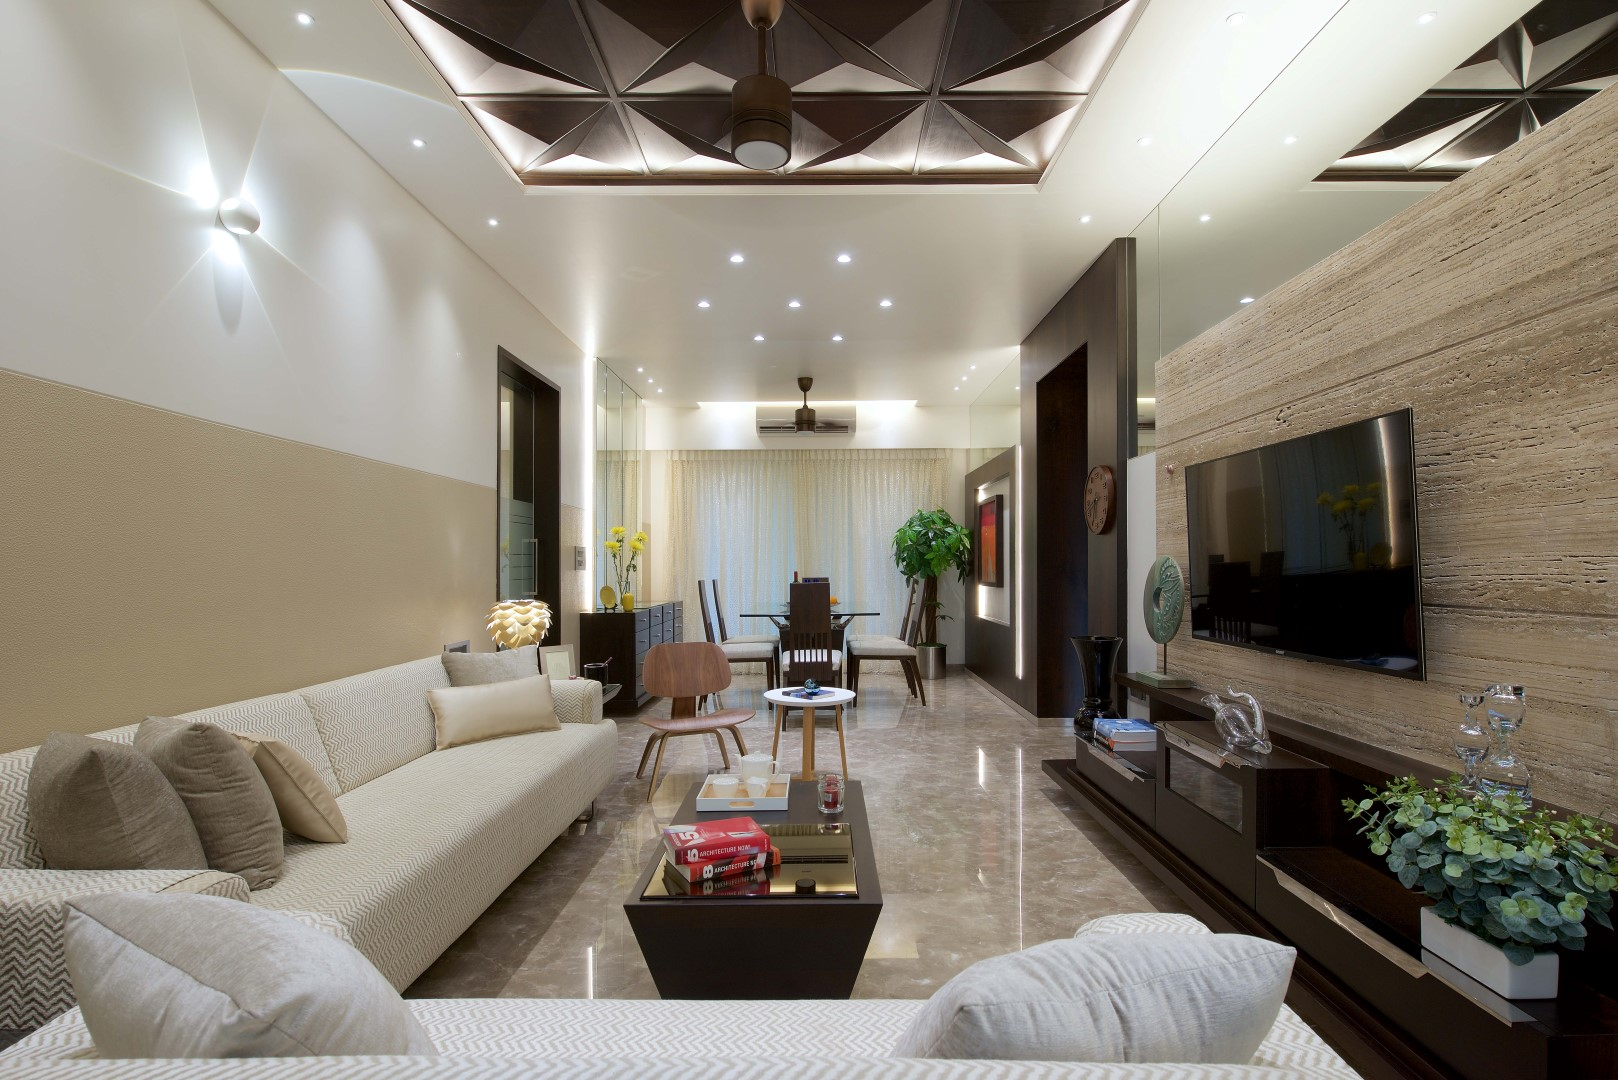 3 Bhk Apartment Interiors At Yari Road Amit Shastri Architects The Architects Diary